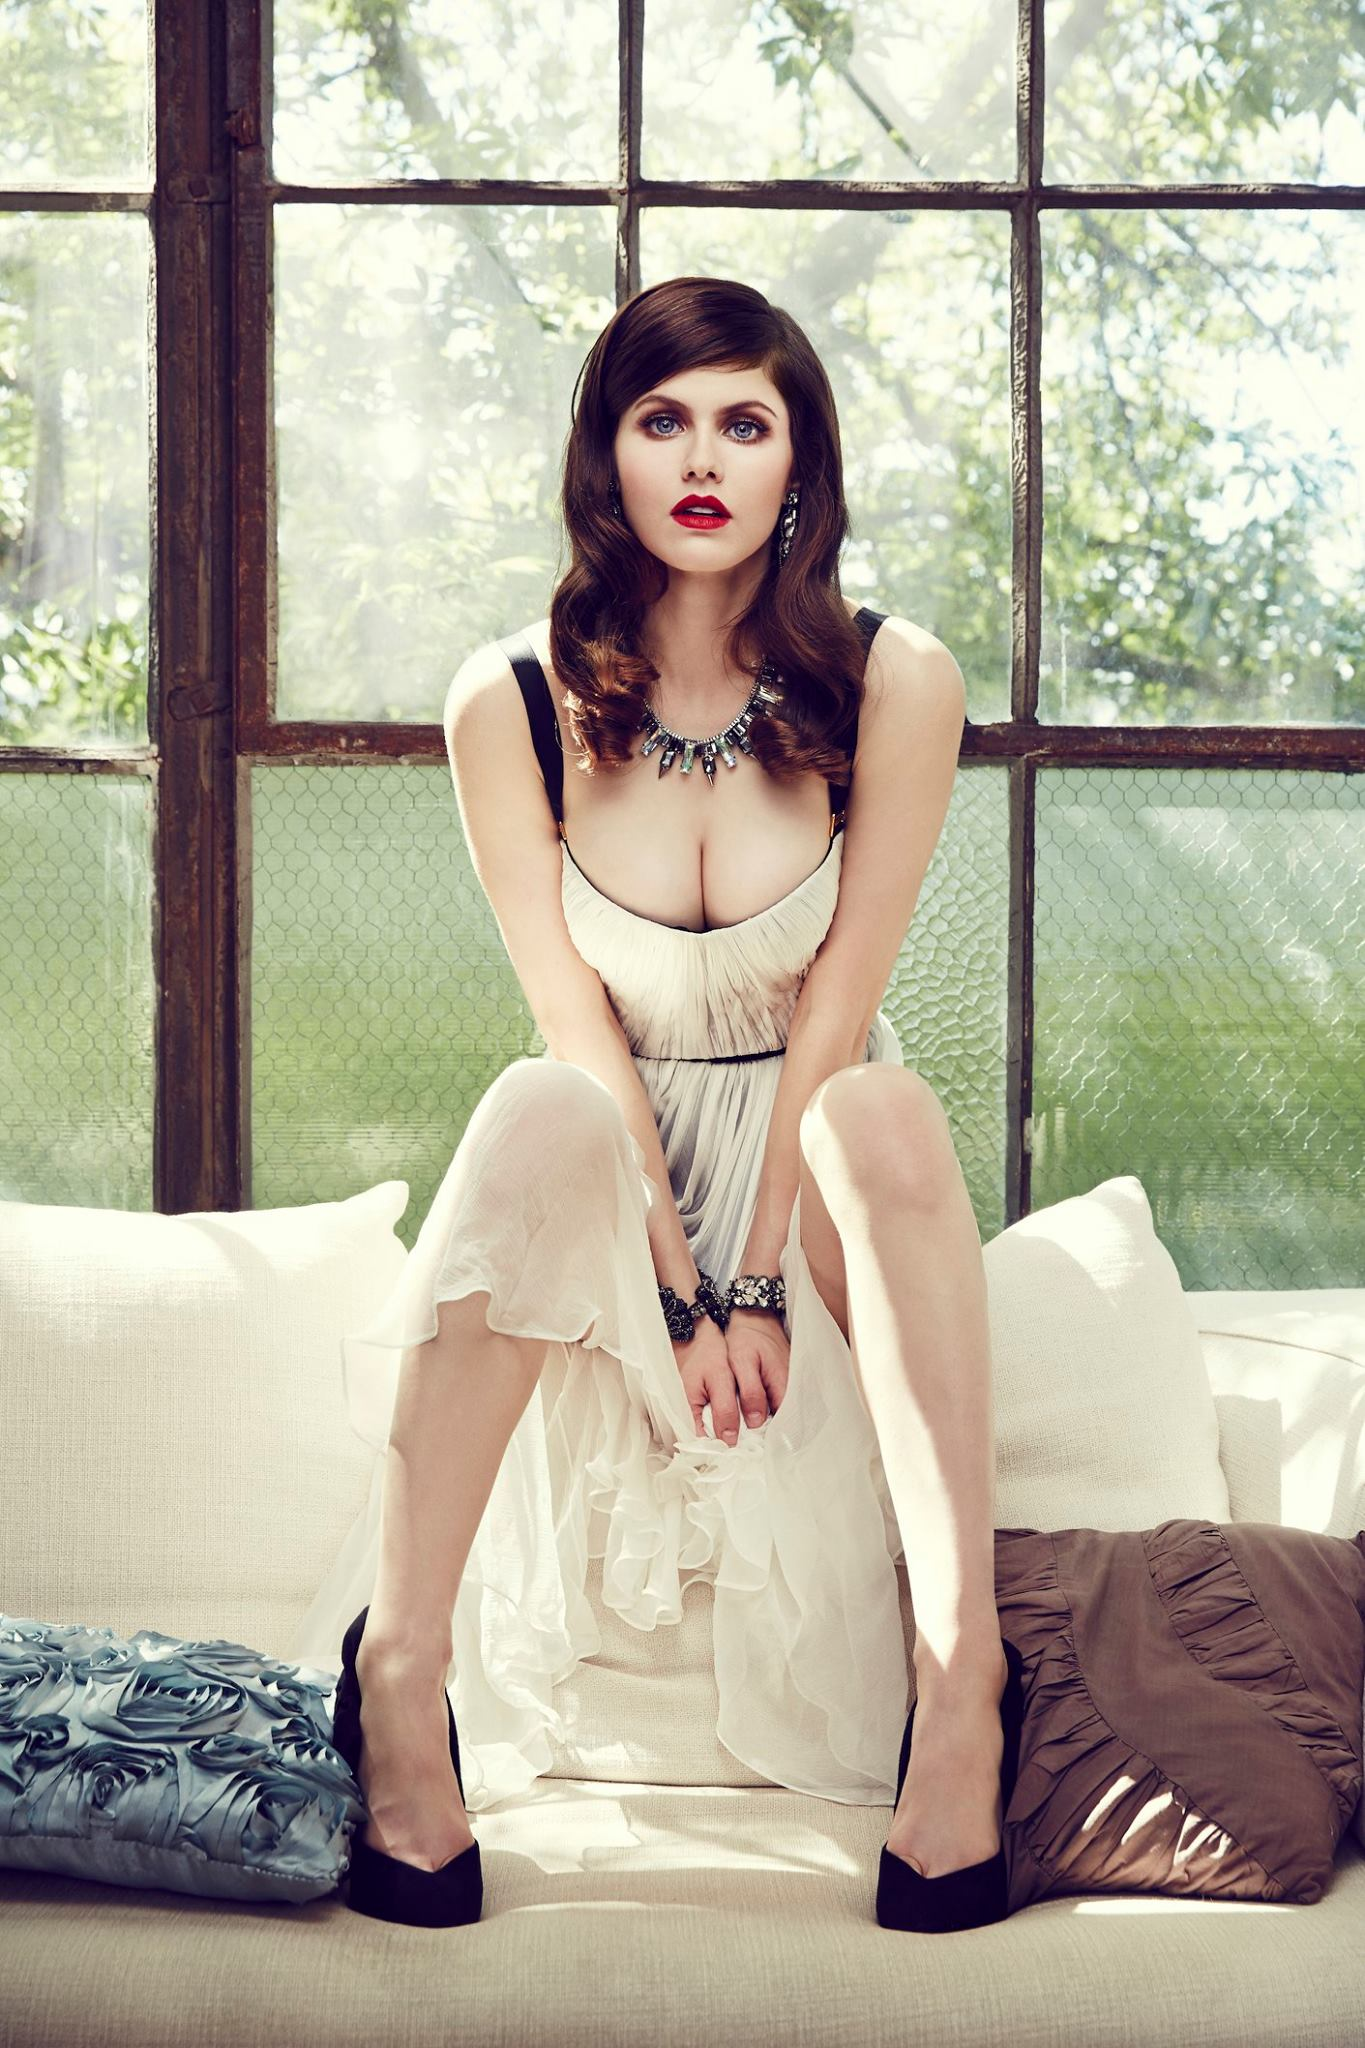 Alexandra Daddario Hot Photos, Images & Videos